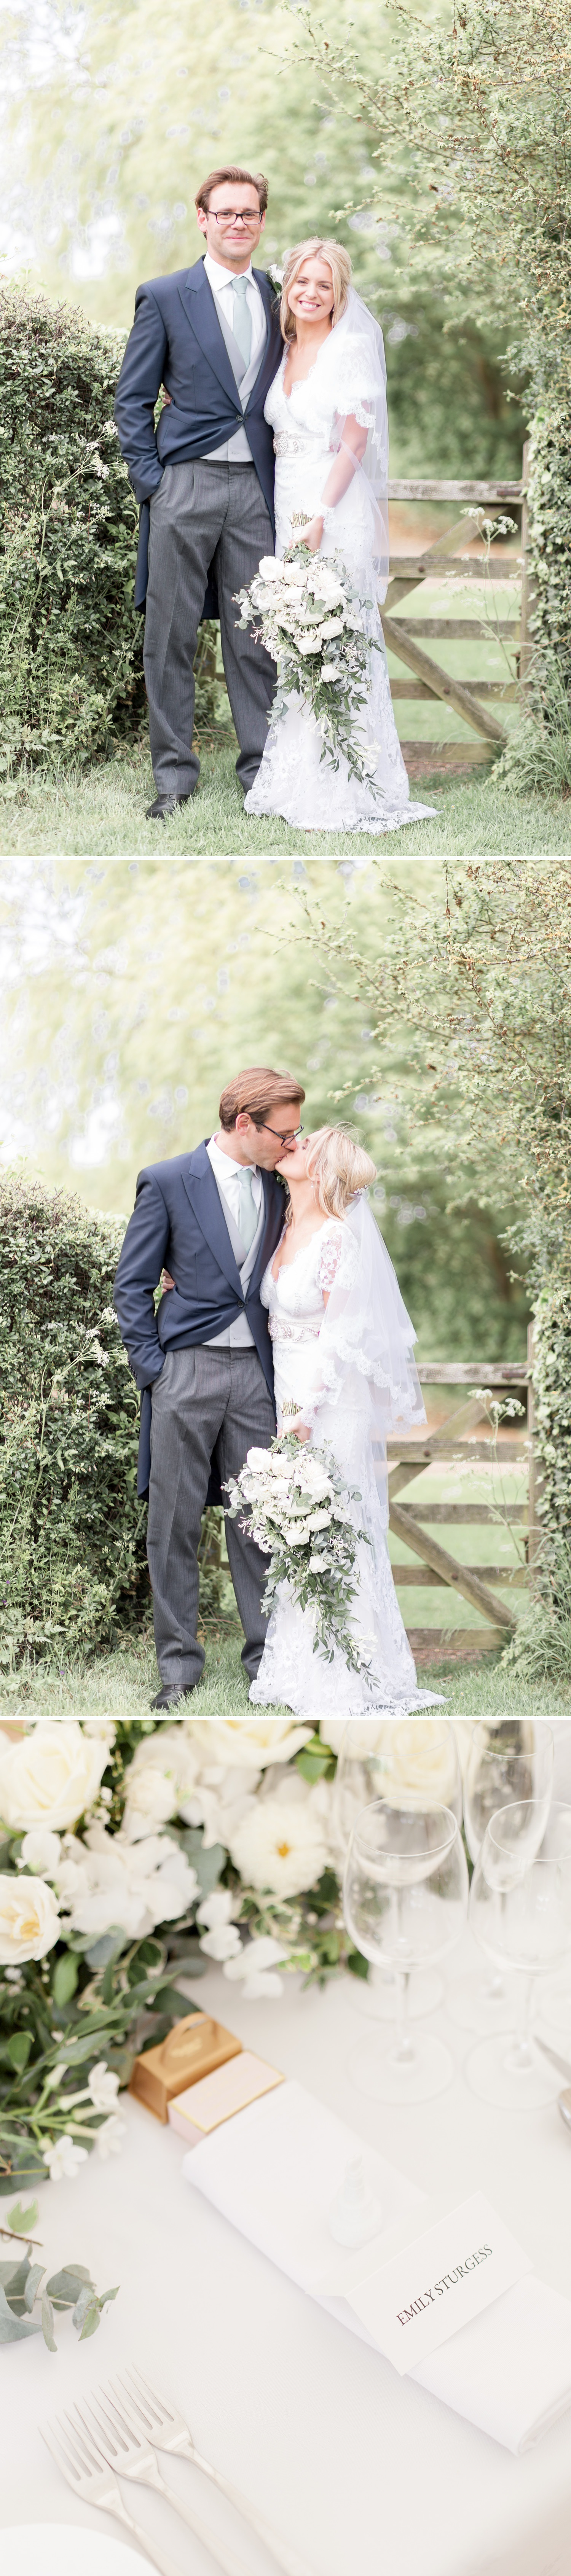 Emily & Jonathan's Cambridgeshire wedding - couple standing in a pretty field